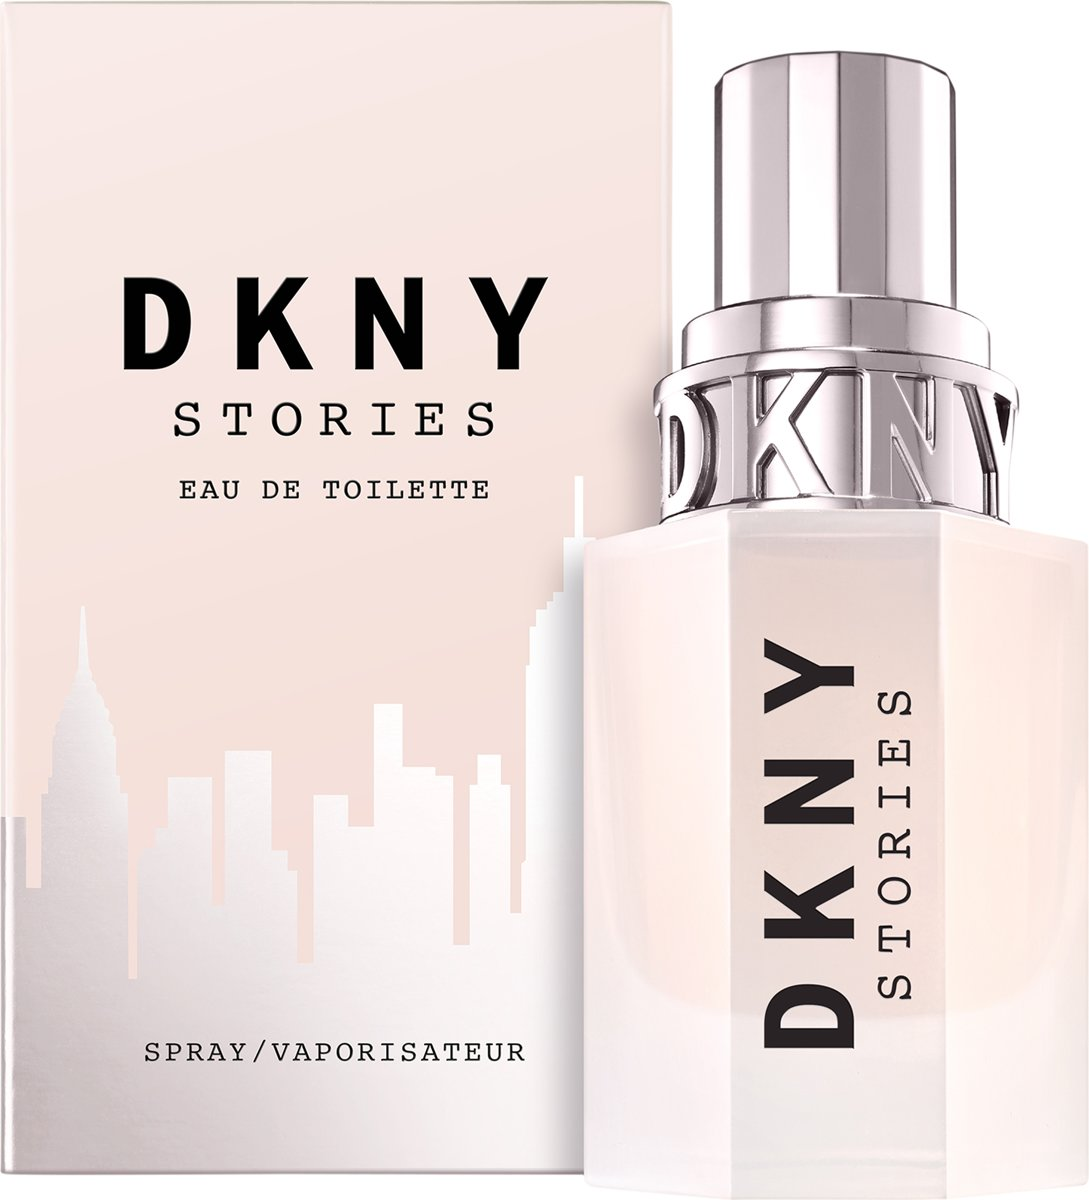 DKNY - Stories - 30 ml - Eau de Toilette